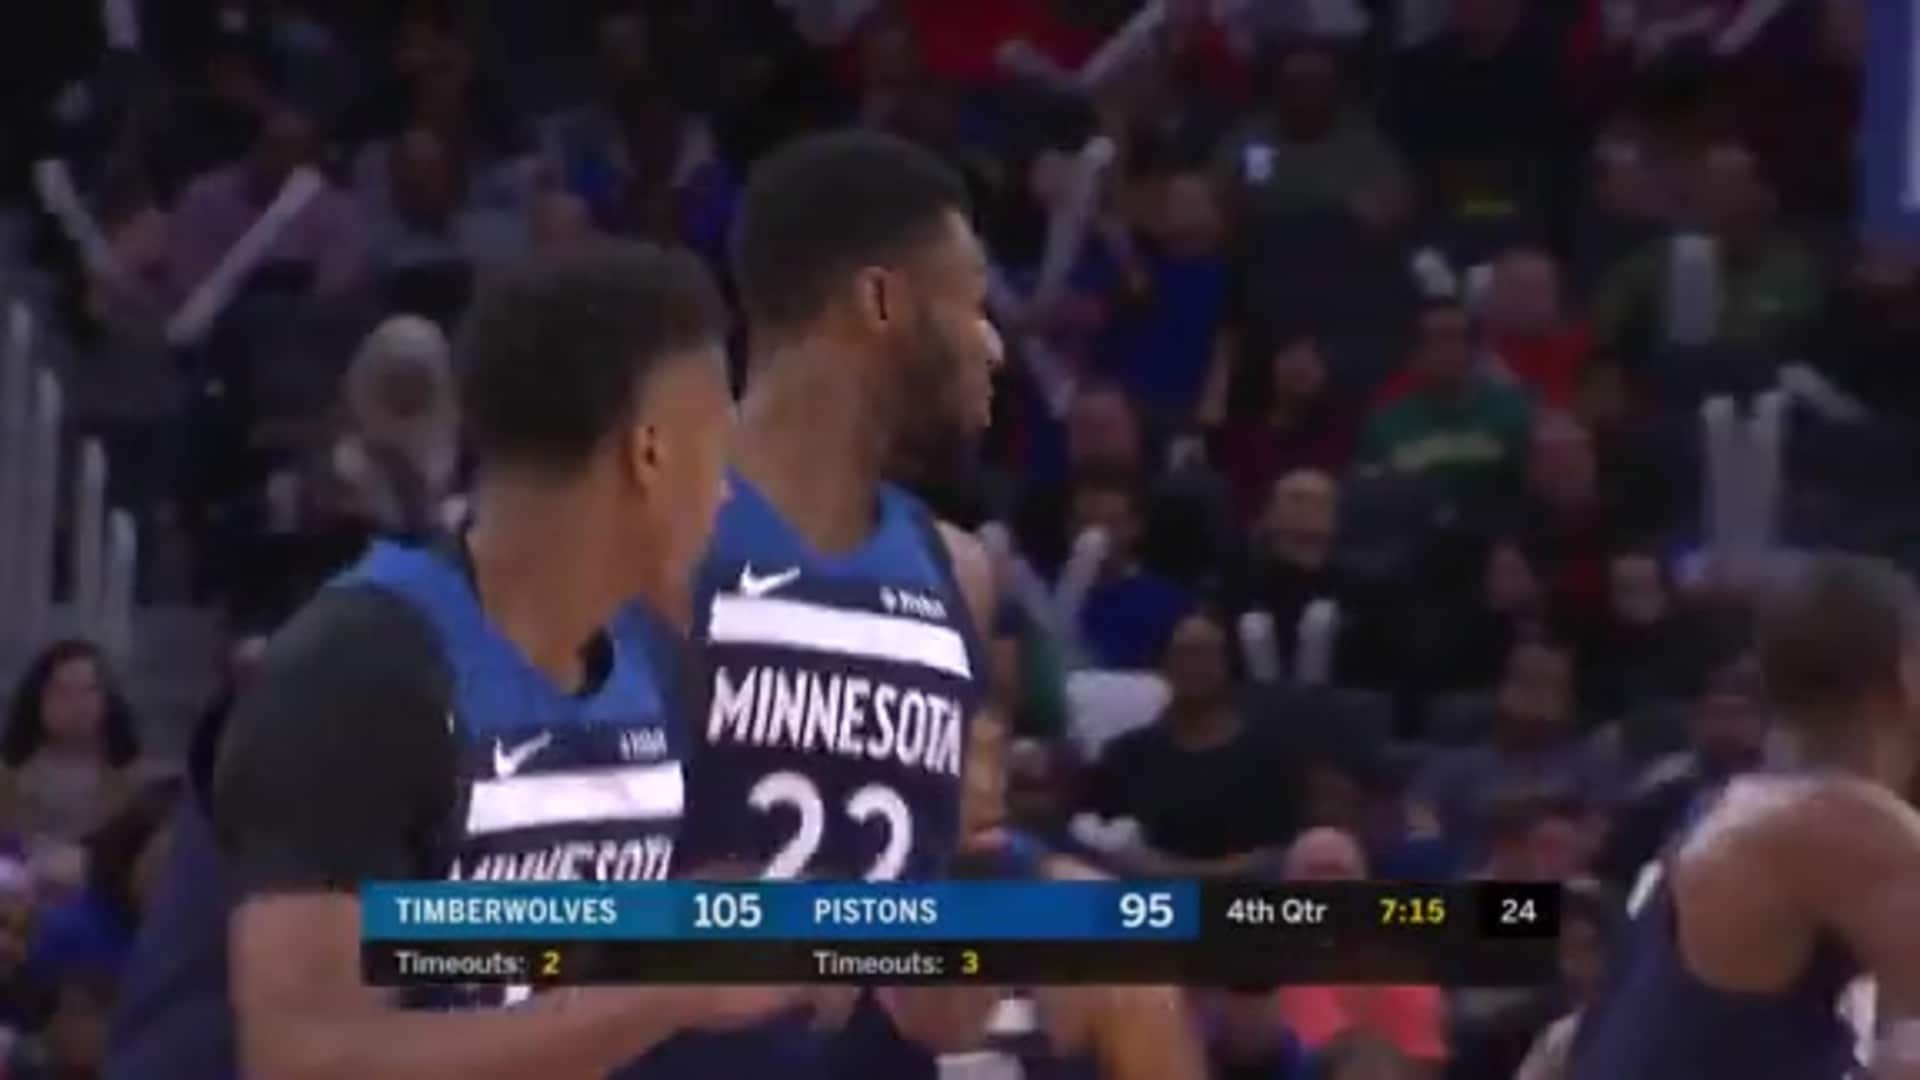 Highlights | Andrew Wiggins With 33 Points, 6 Rebounds & 5 Assists vs. Pistons (11.11.19)